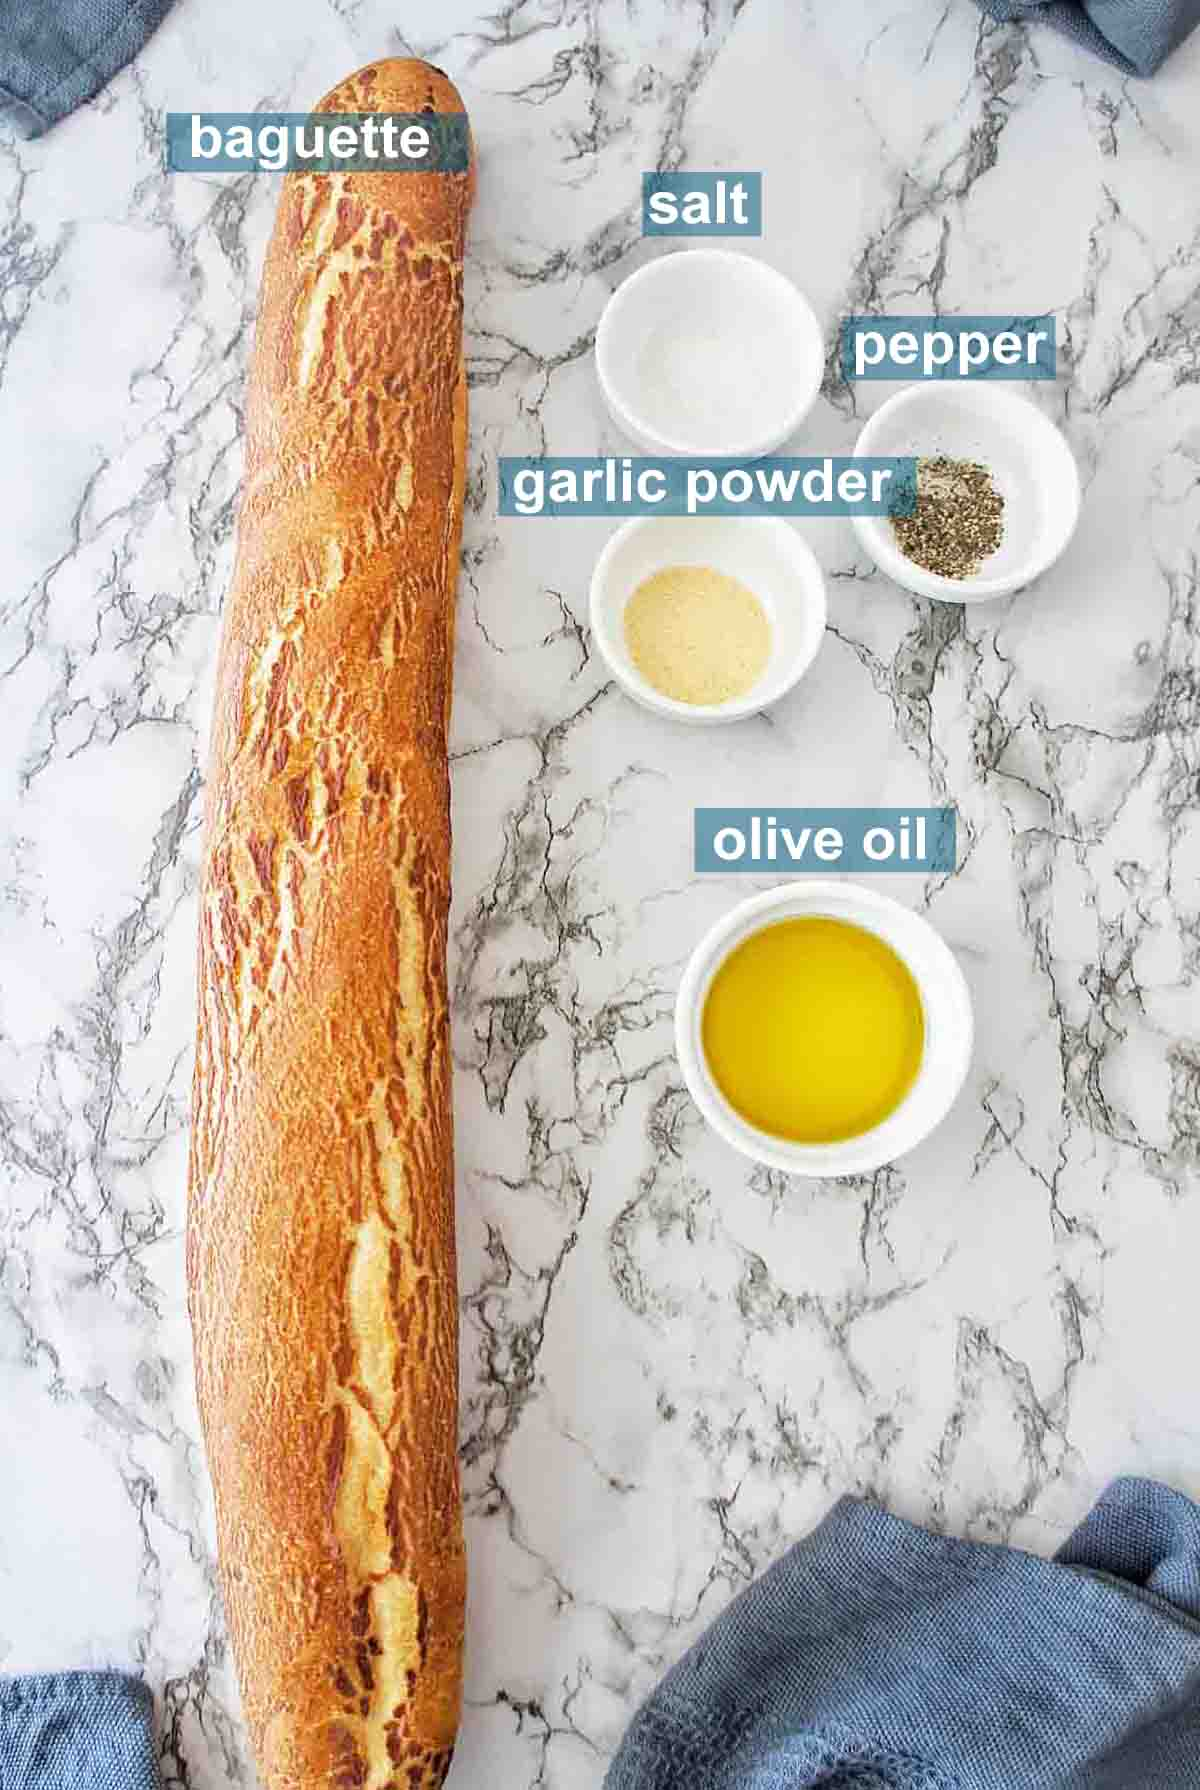 Ingredients for crostini with text labels